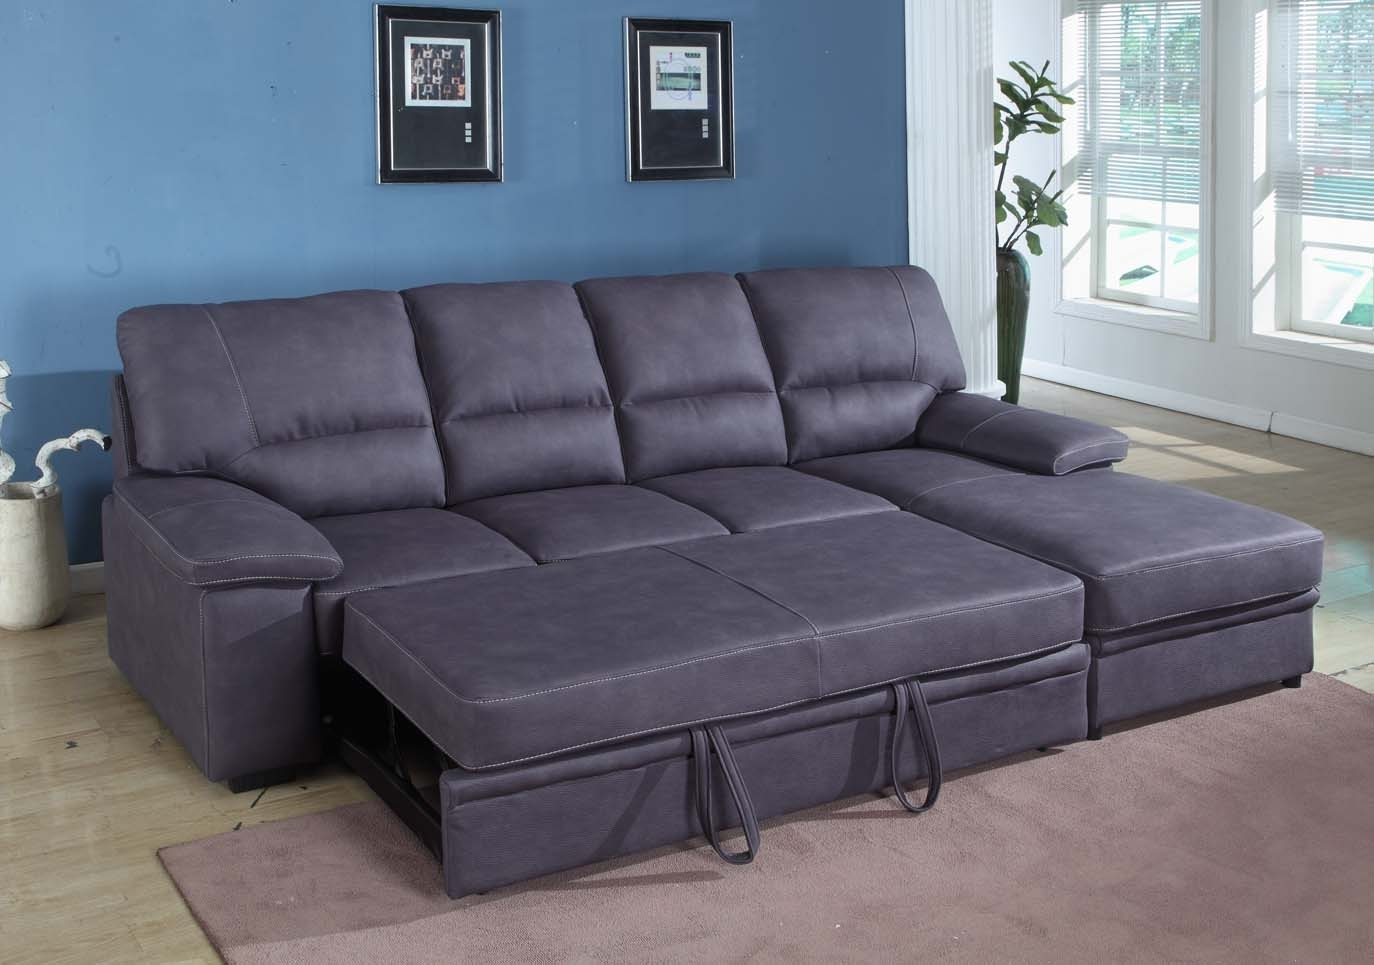 Grey Sleeper Sectional Sofa | Houston Mattress King For Houston Sectional Sofas (View 2 of 10)